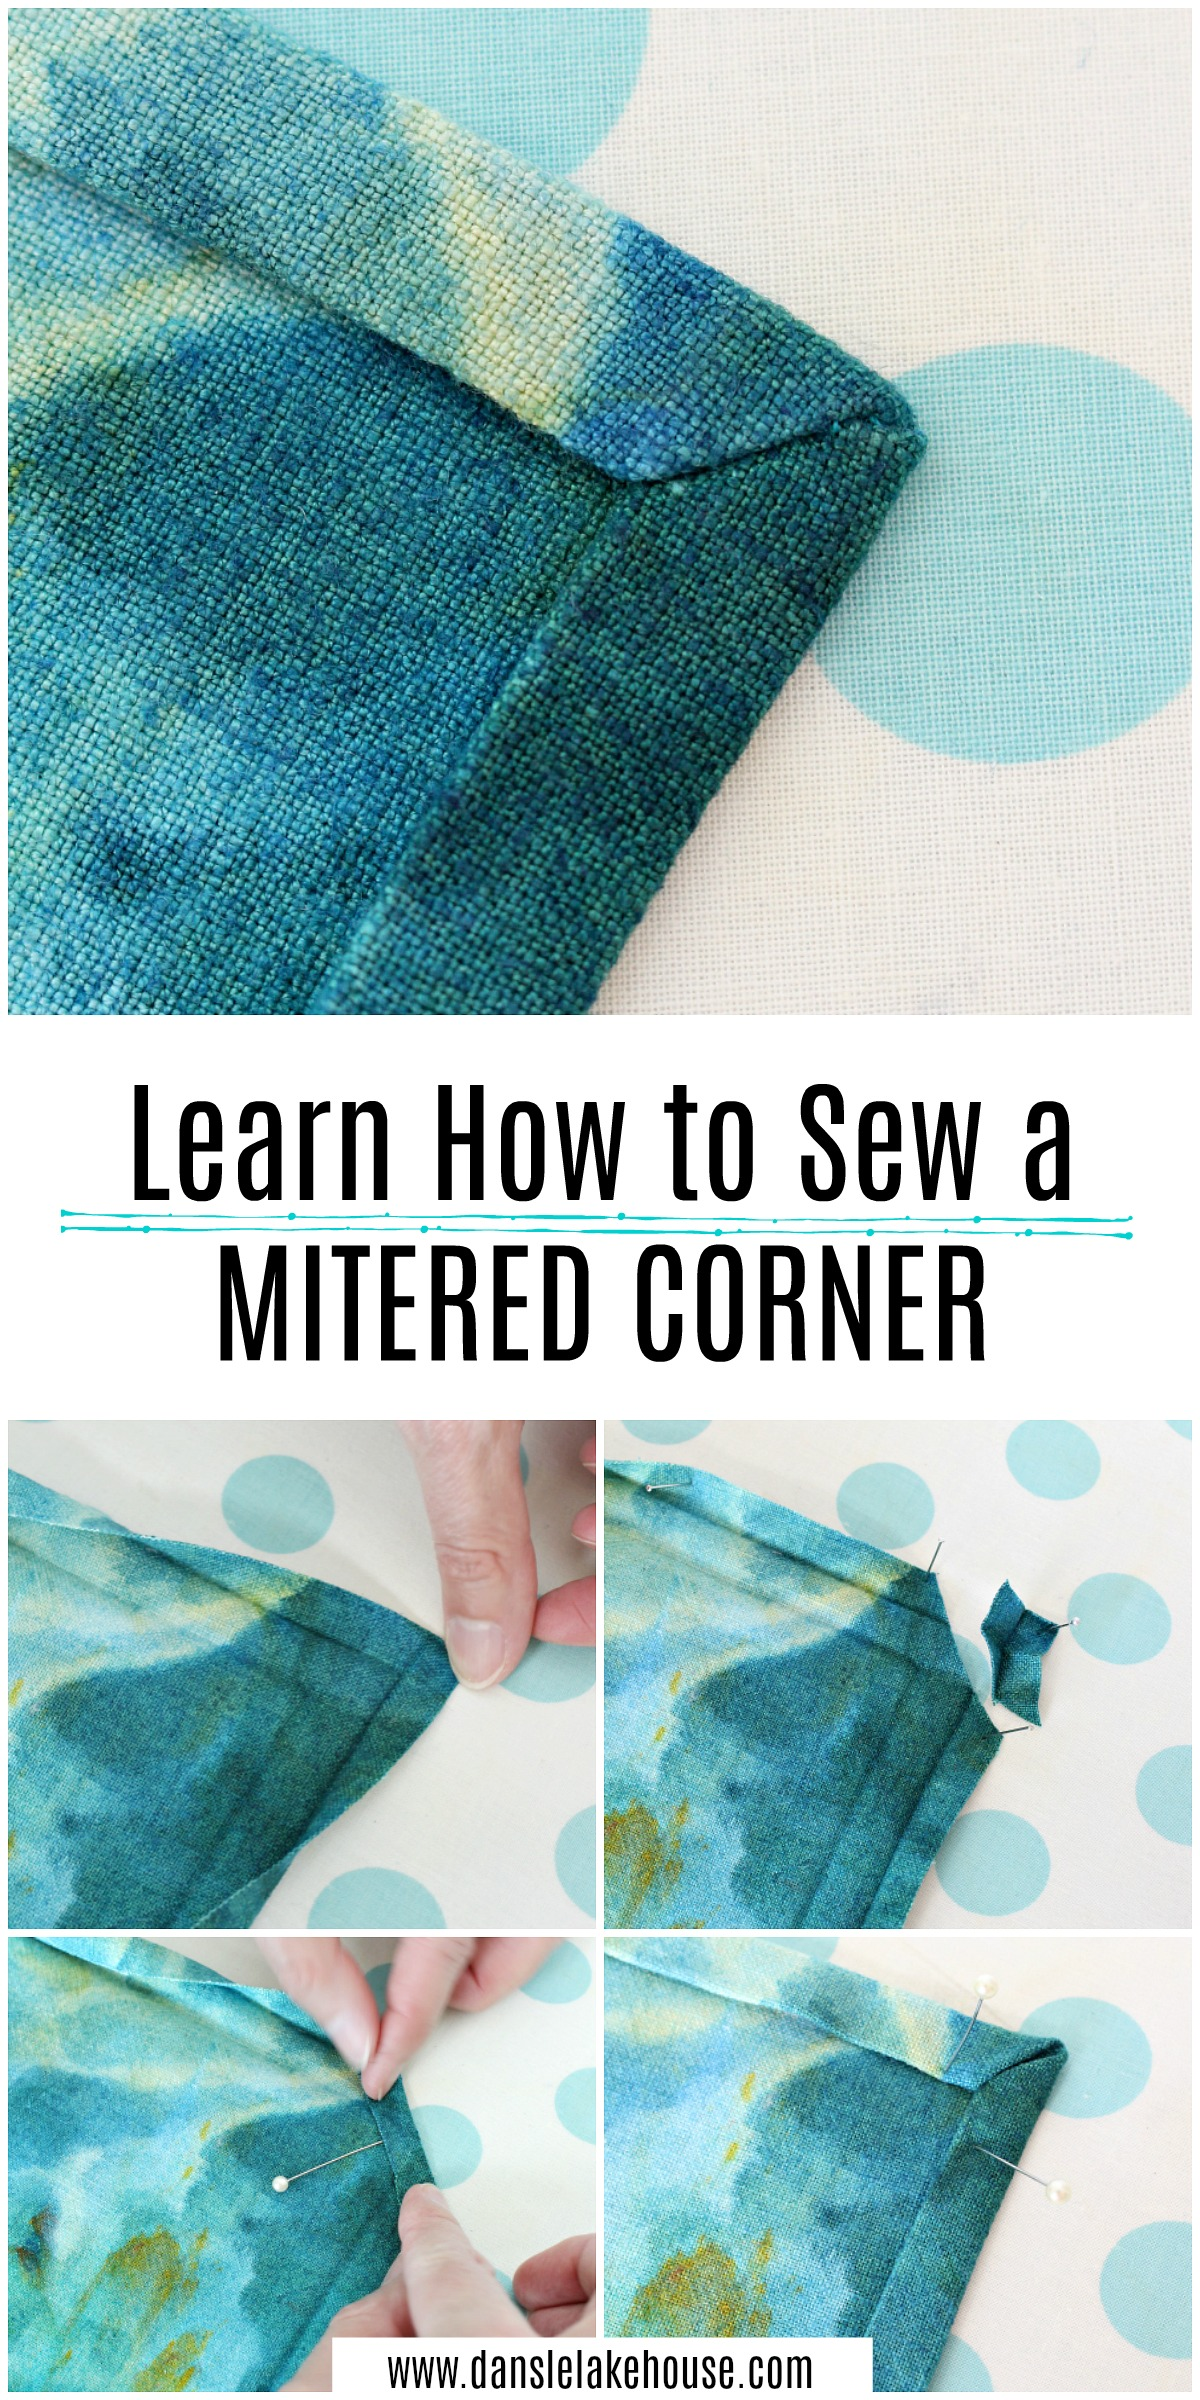 Learn how to sew a mitered corner